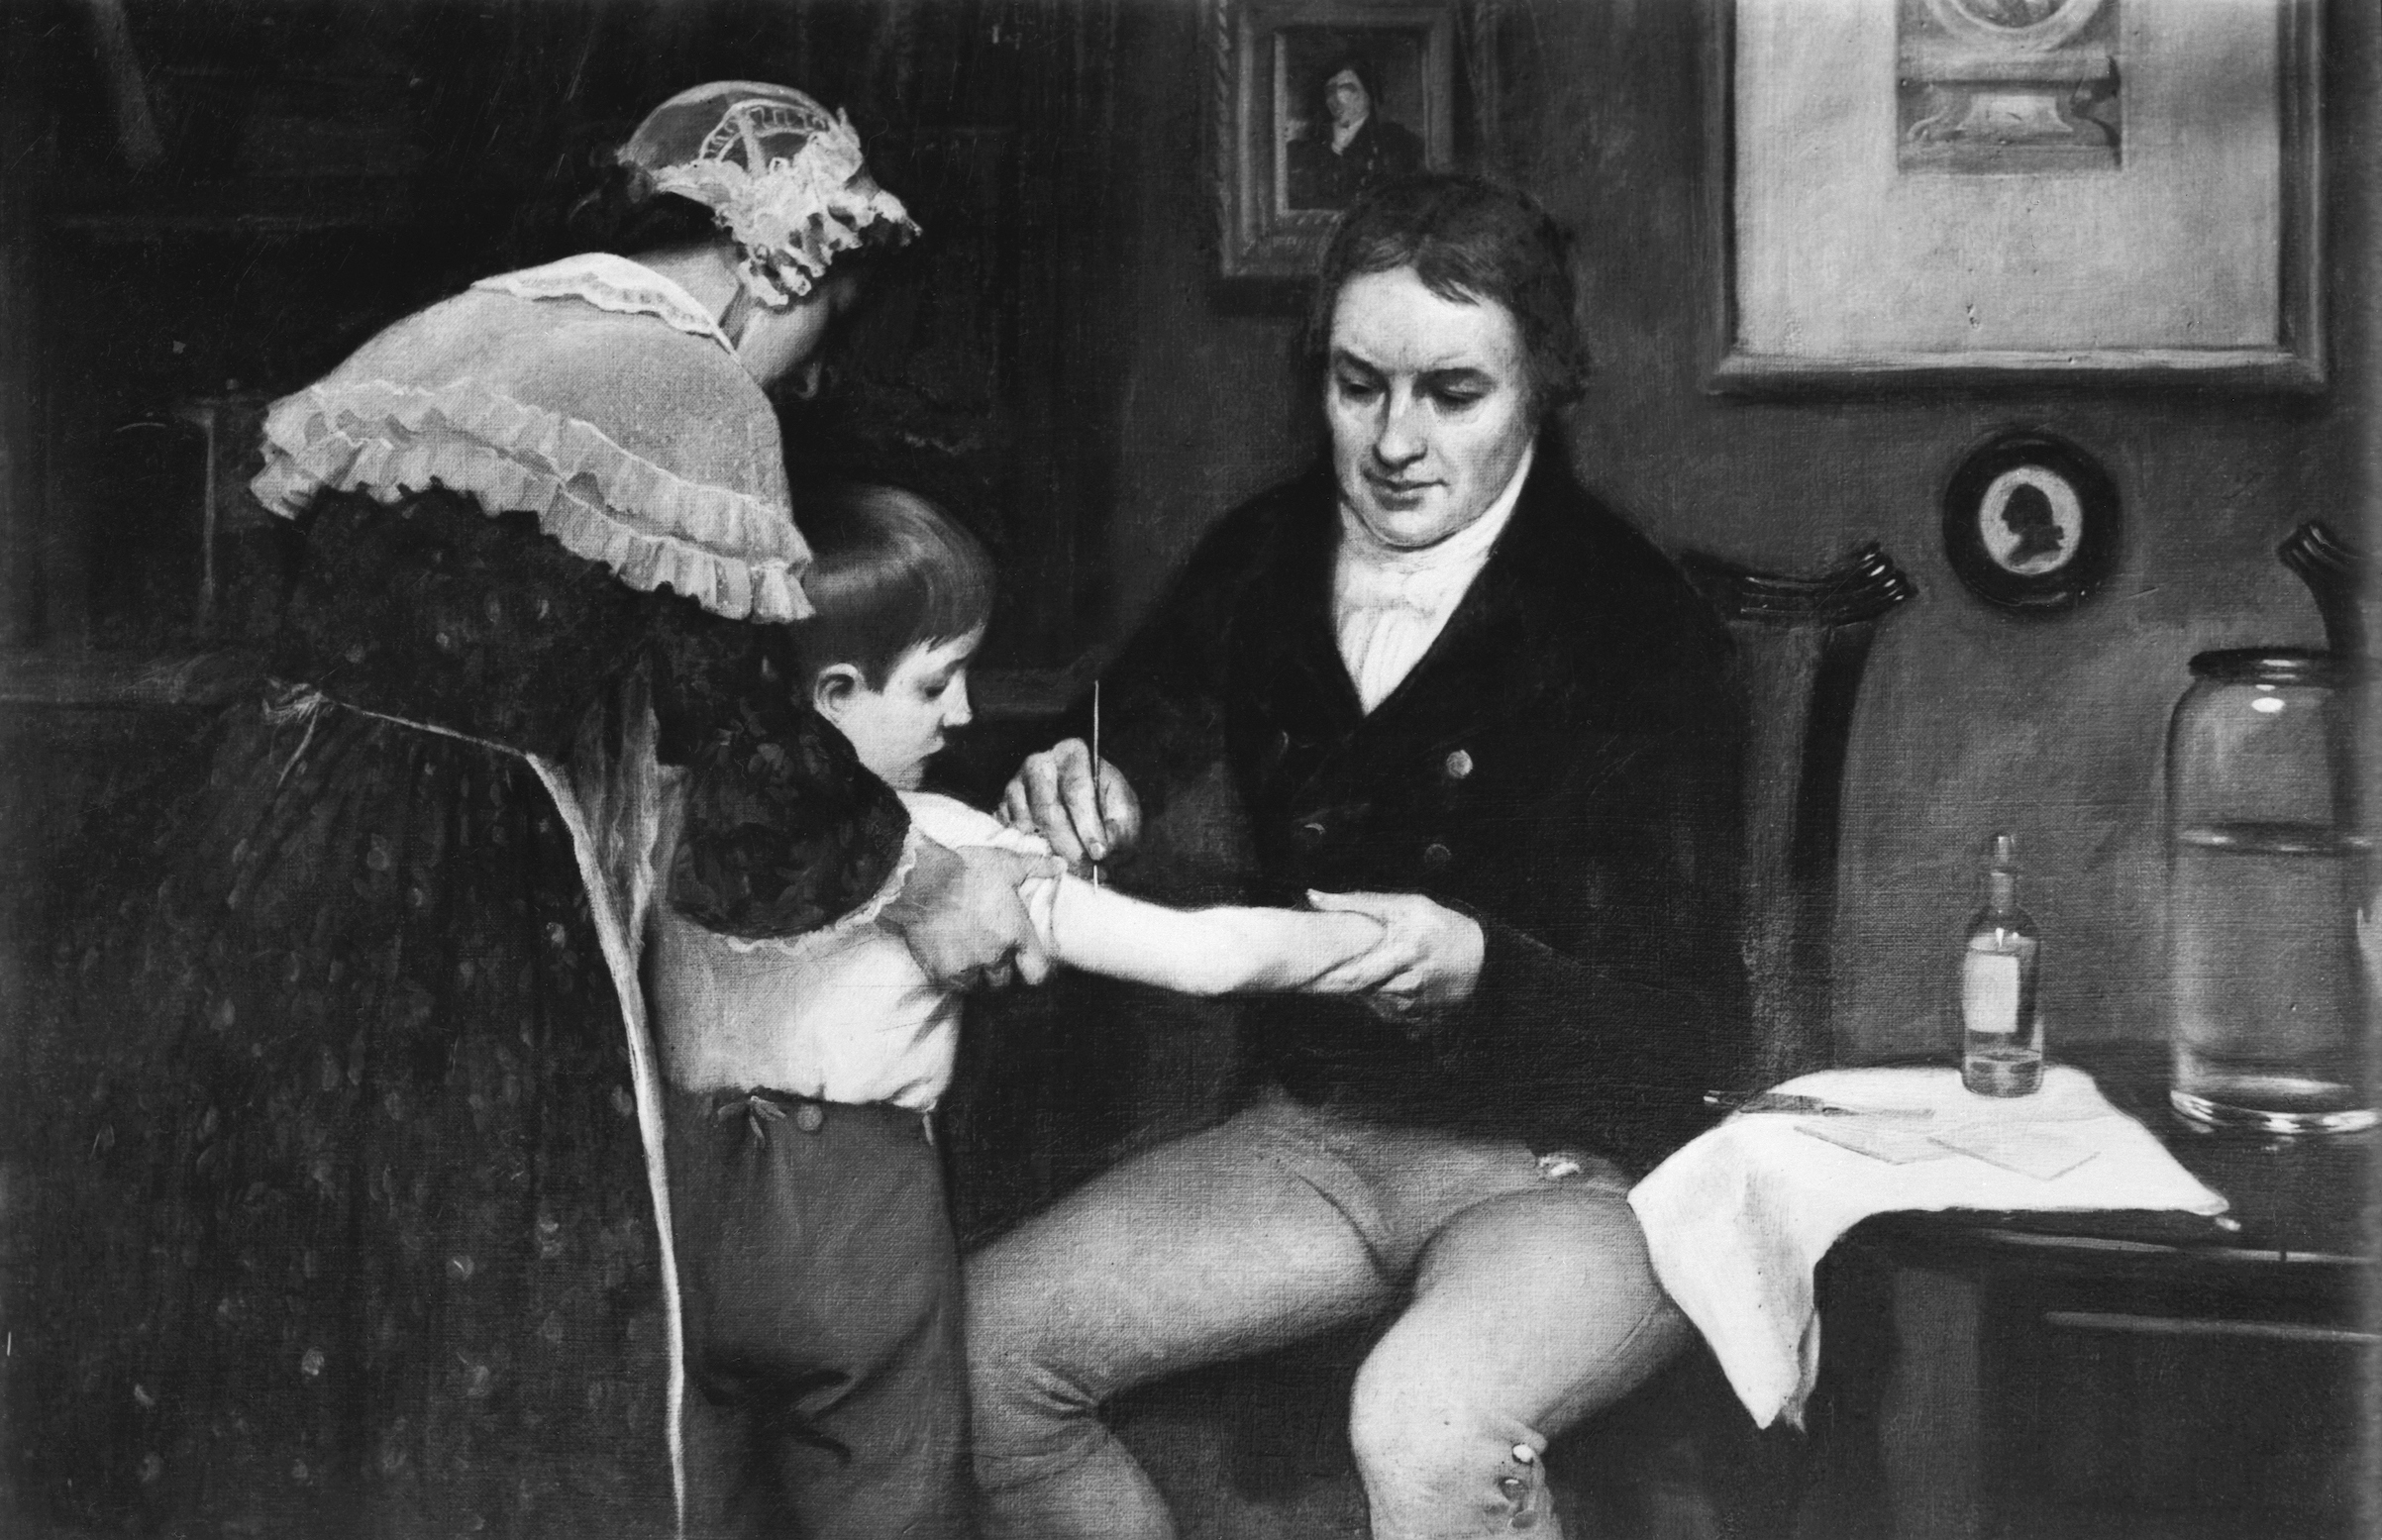 Dr. Edward Jenner (1749-1823) performing his first vaccination on James Phipps on May 14, 1796. Painting by E. Board in the Welcome Museum, London. Undated painting.